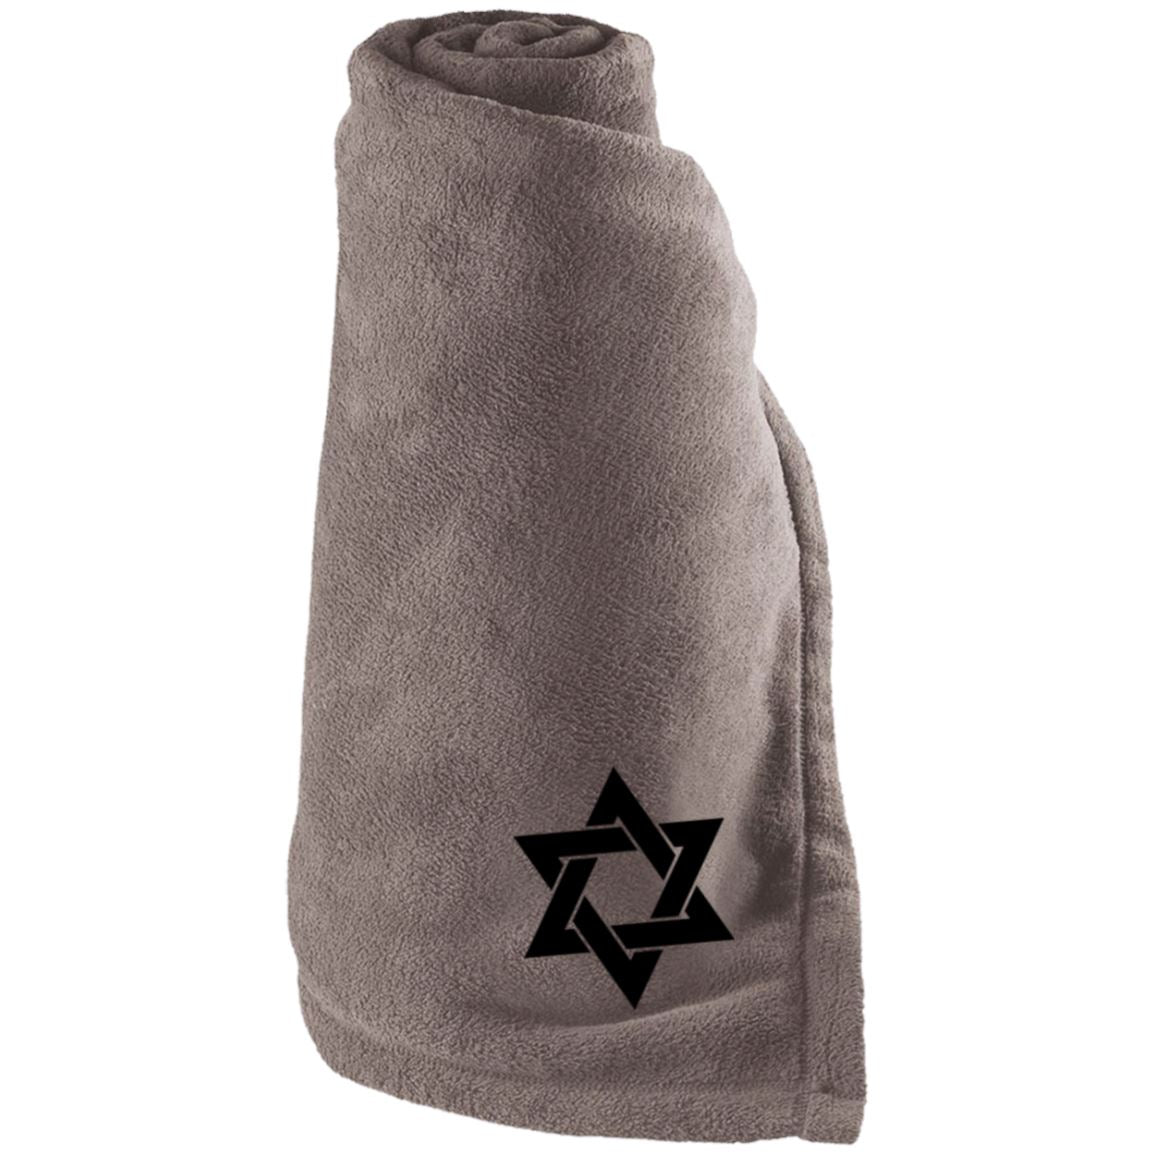 Jewish Embroidered Large Fleece Blanket Blankets Dark Green One Size